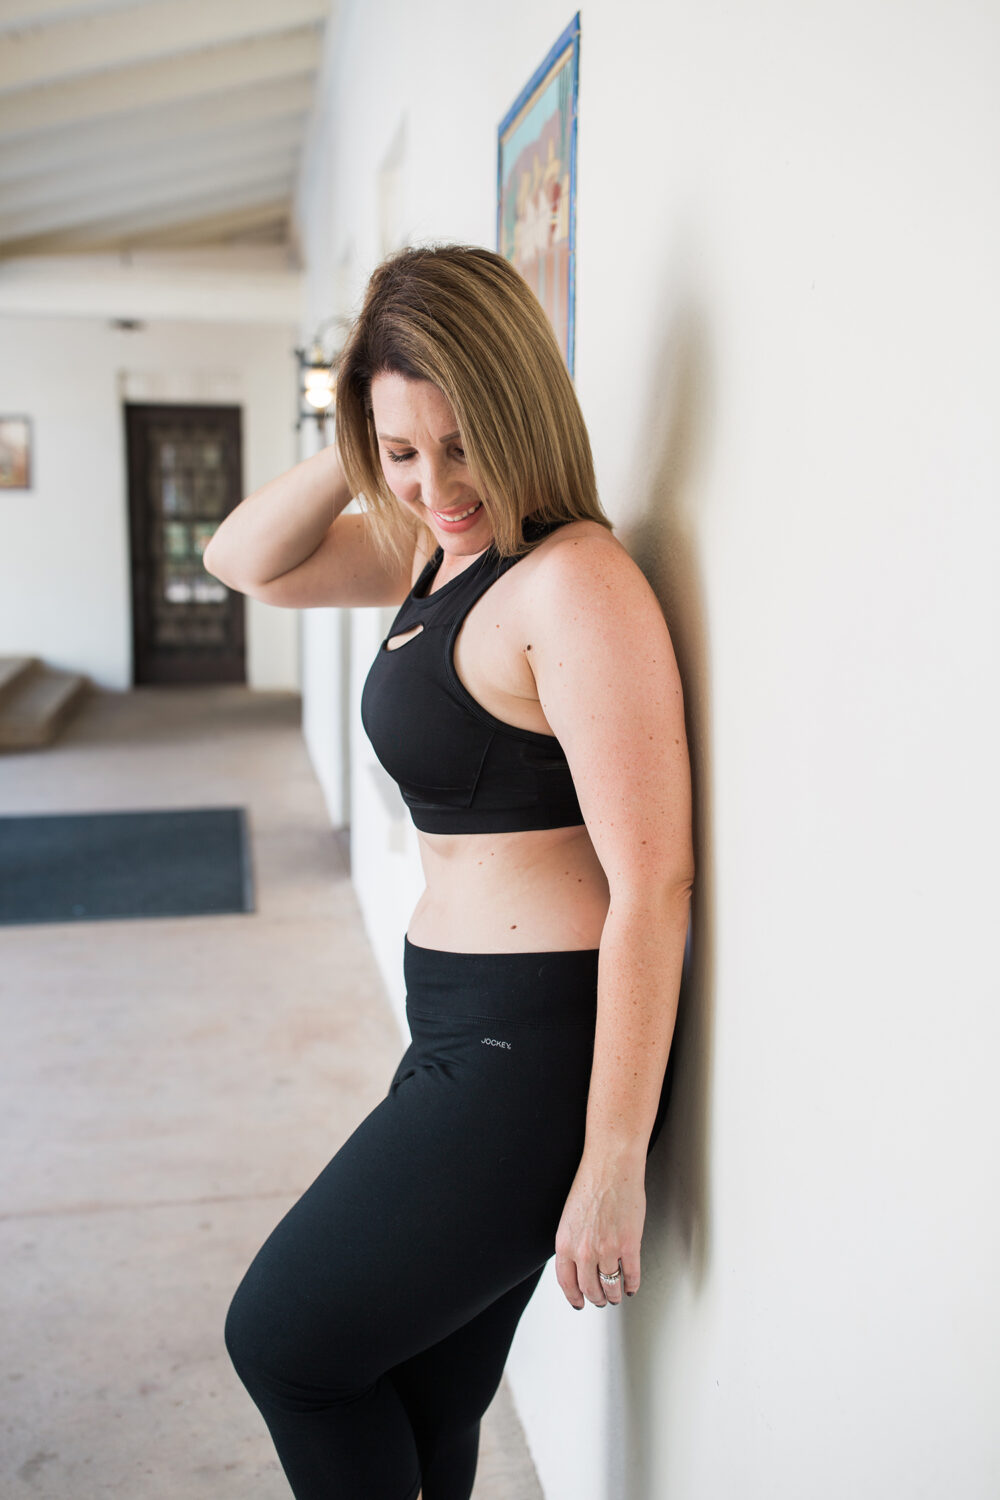 On the search for basic, neutral workout gear? These are the best workout pants for a pear shape!